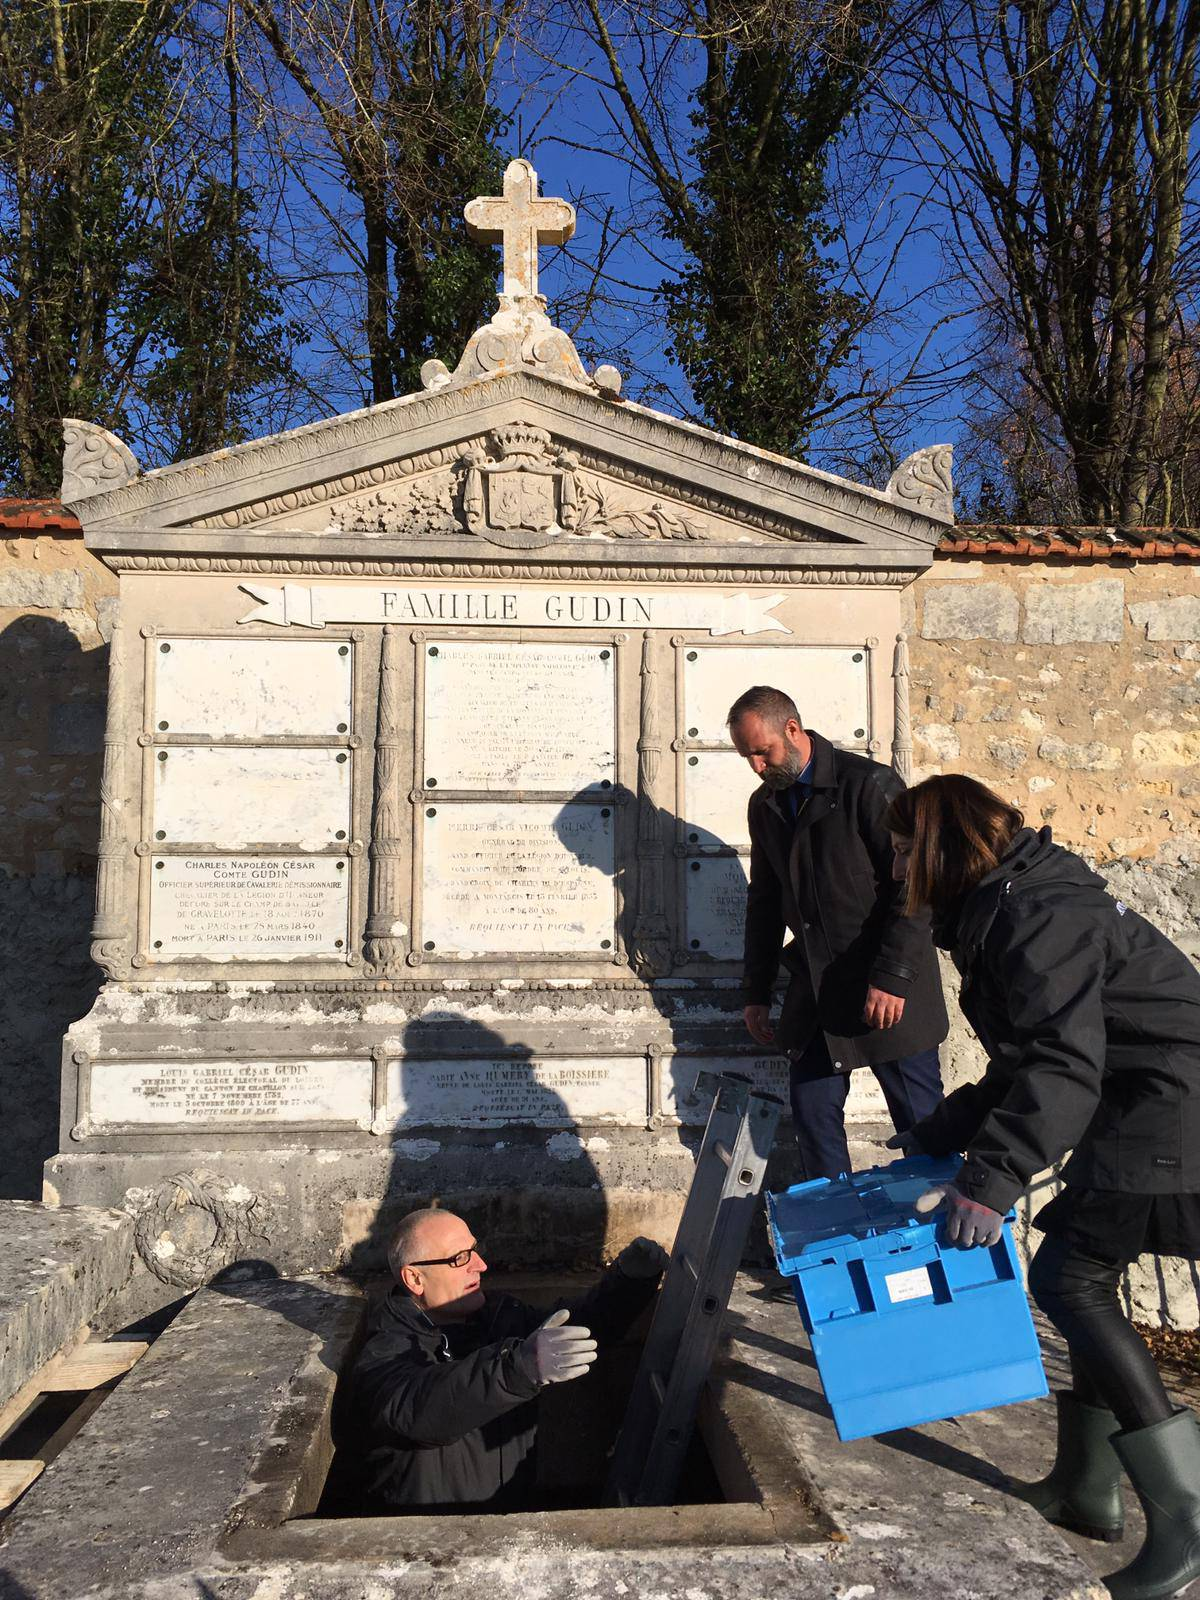 French anthropologists open the Gudin family grave